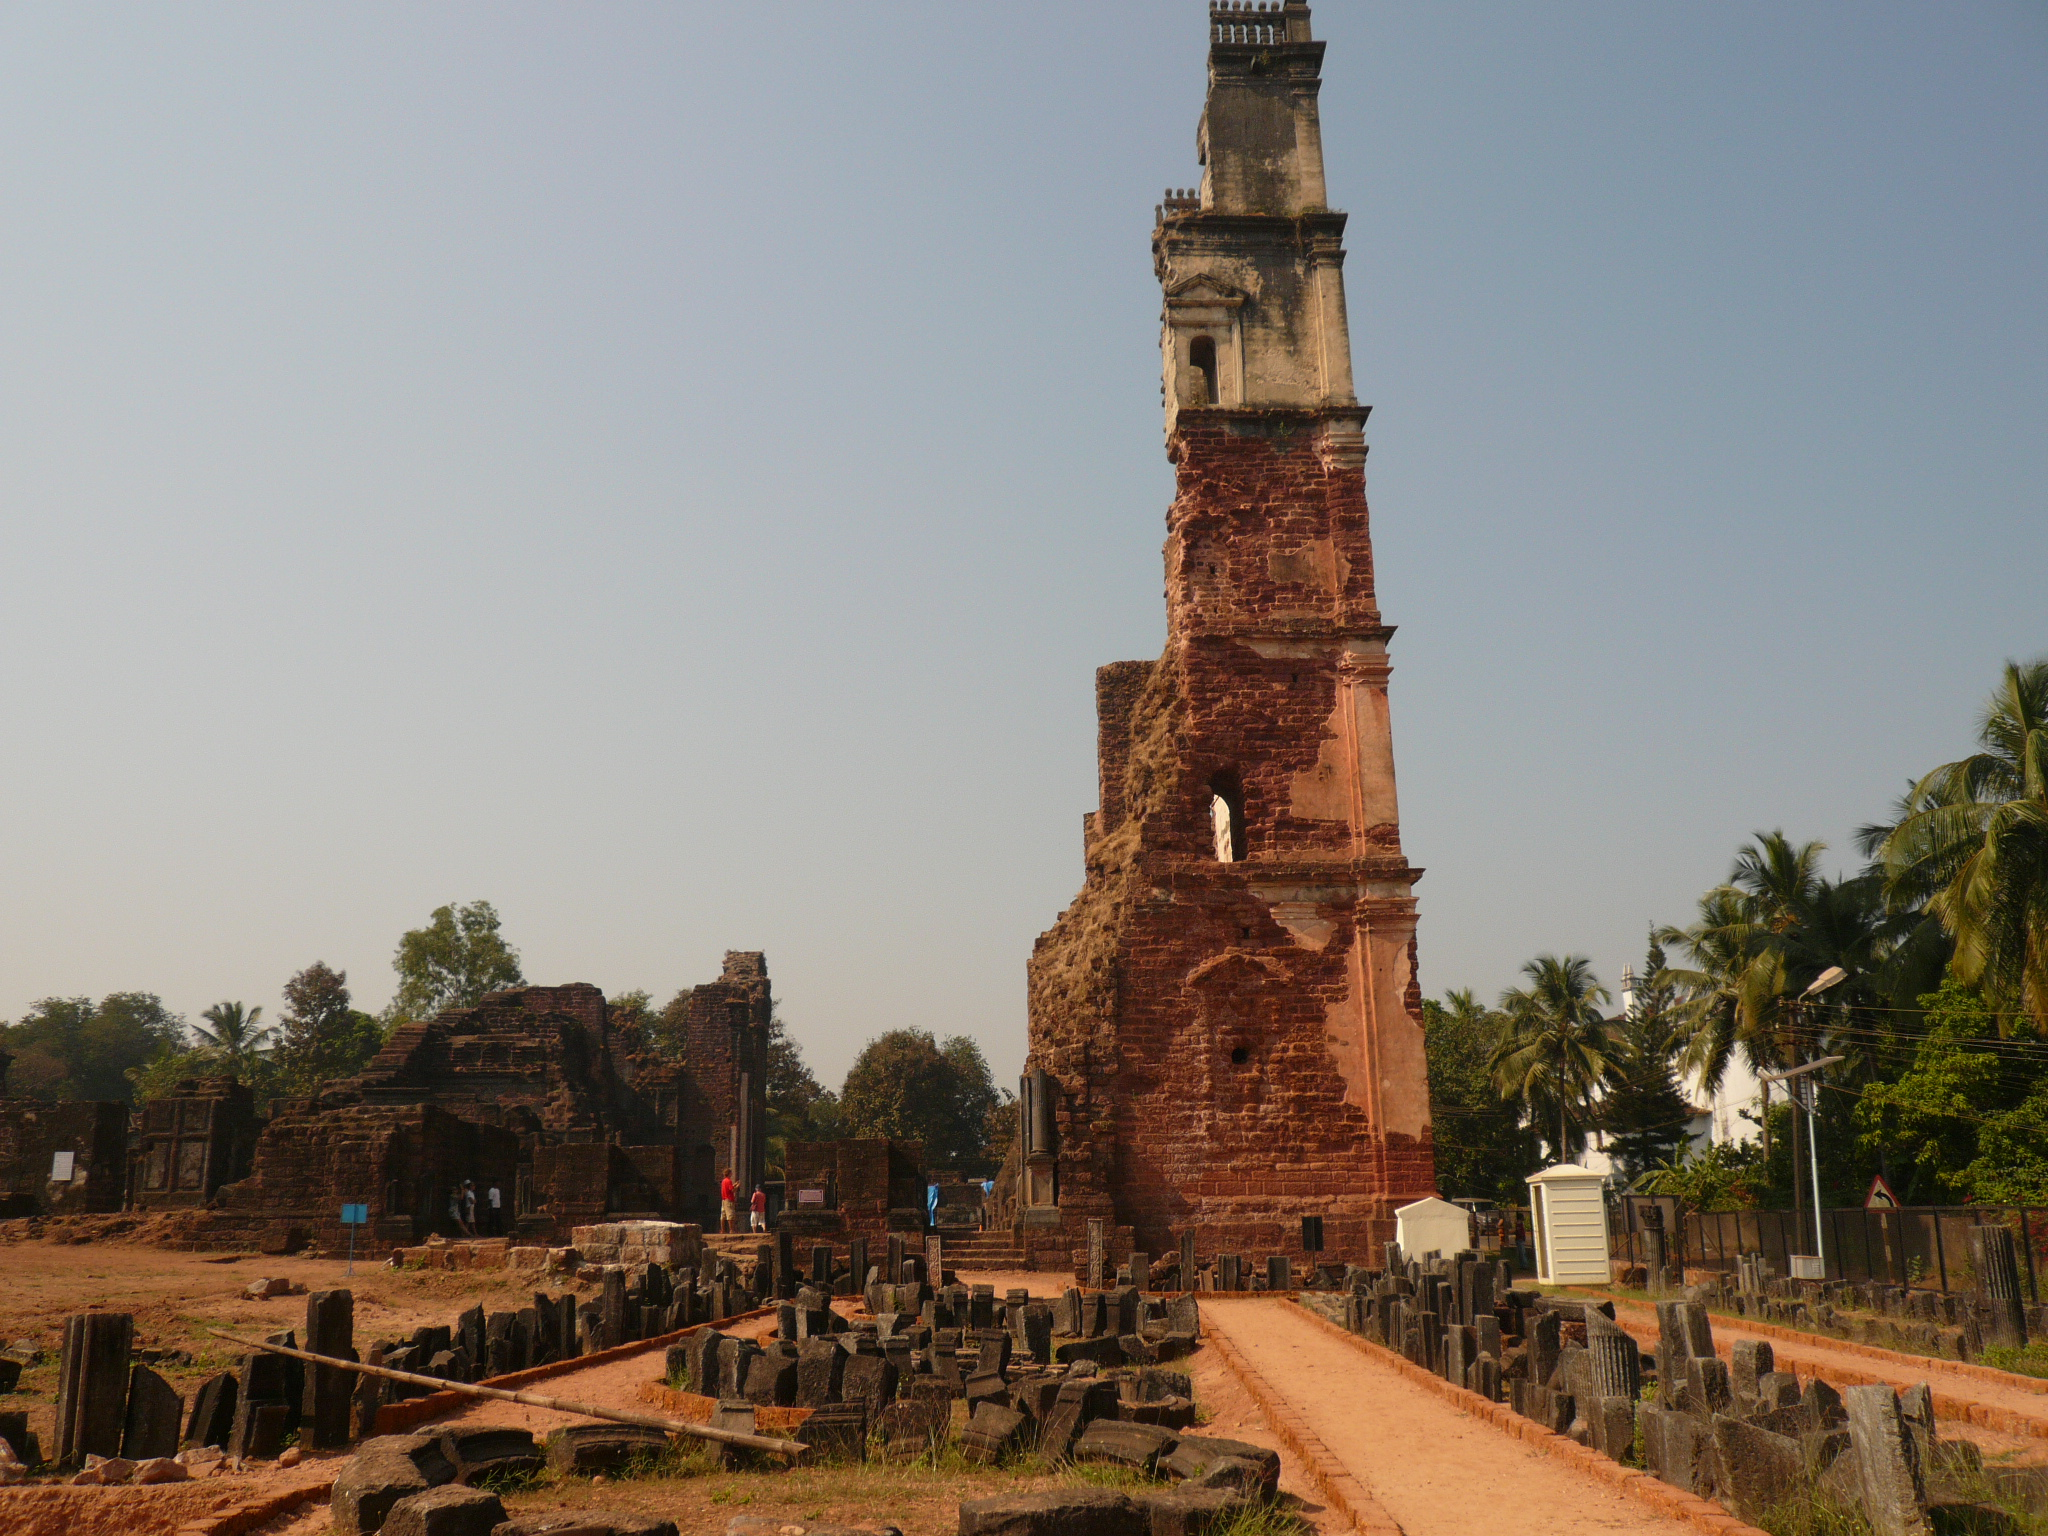 Top Attraction in Panjim That You Shouldn't Miss When in Goa - St. Augustin Towers